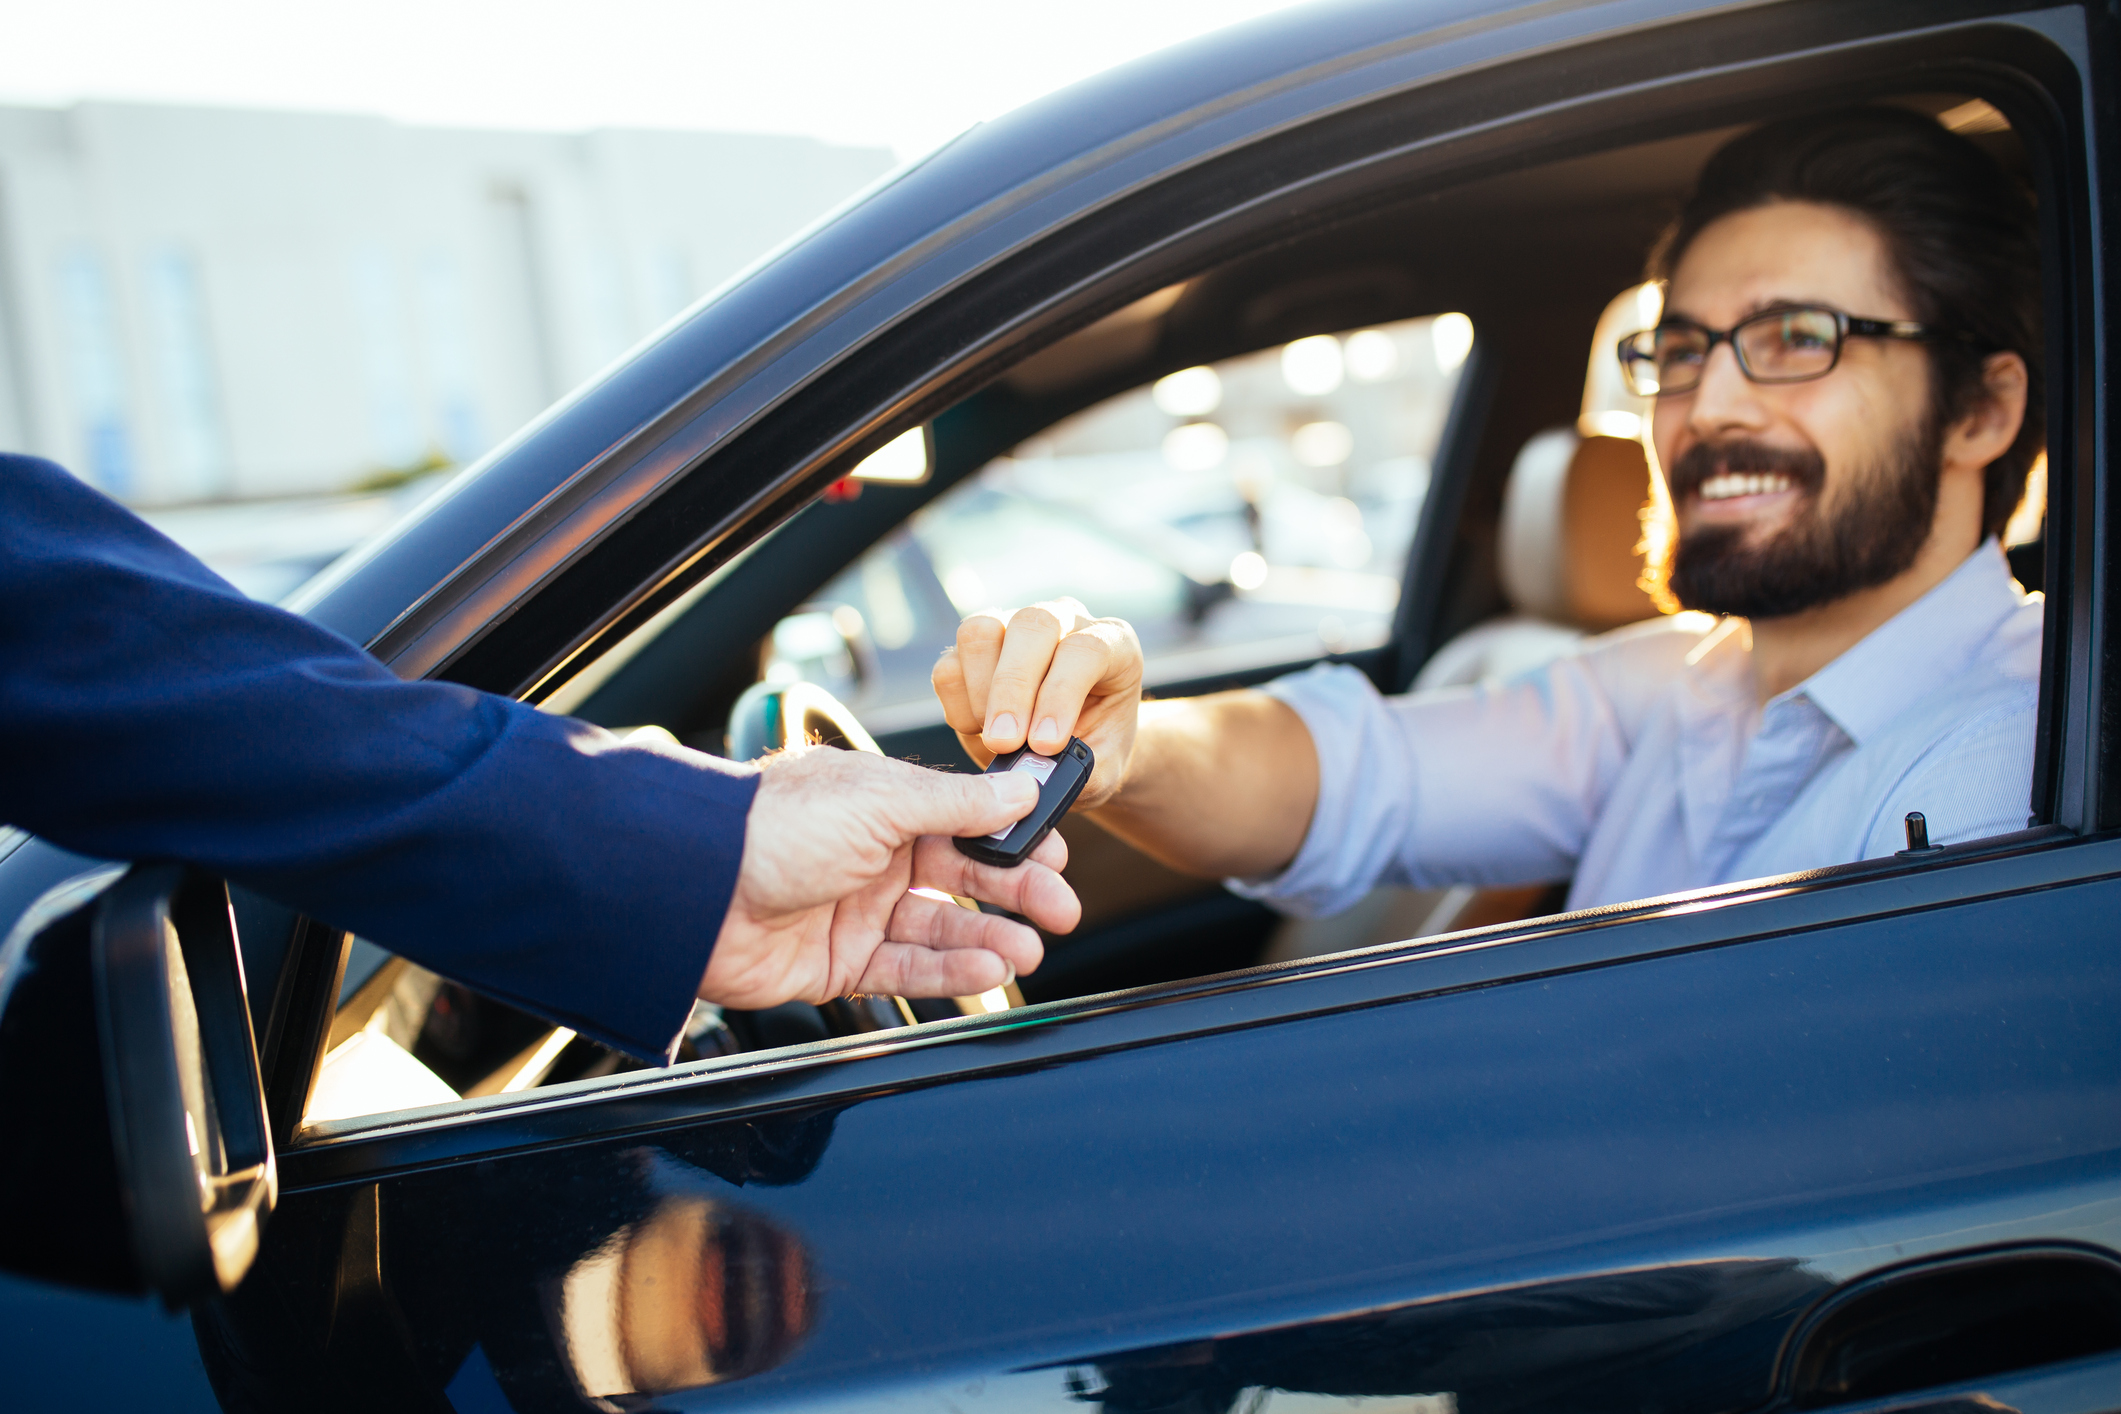 Man in suit jacket handing car keys to man sitting in vehicle.